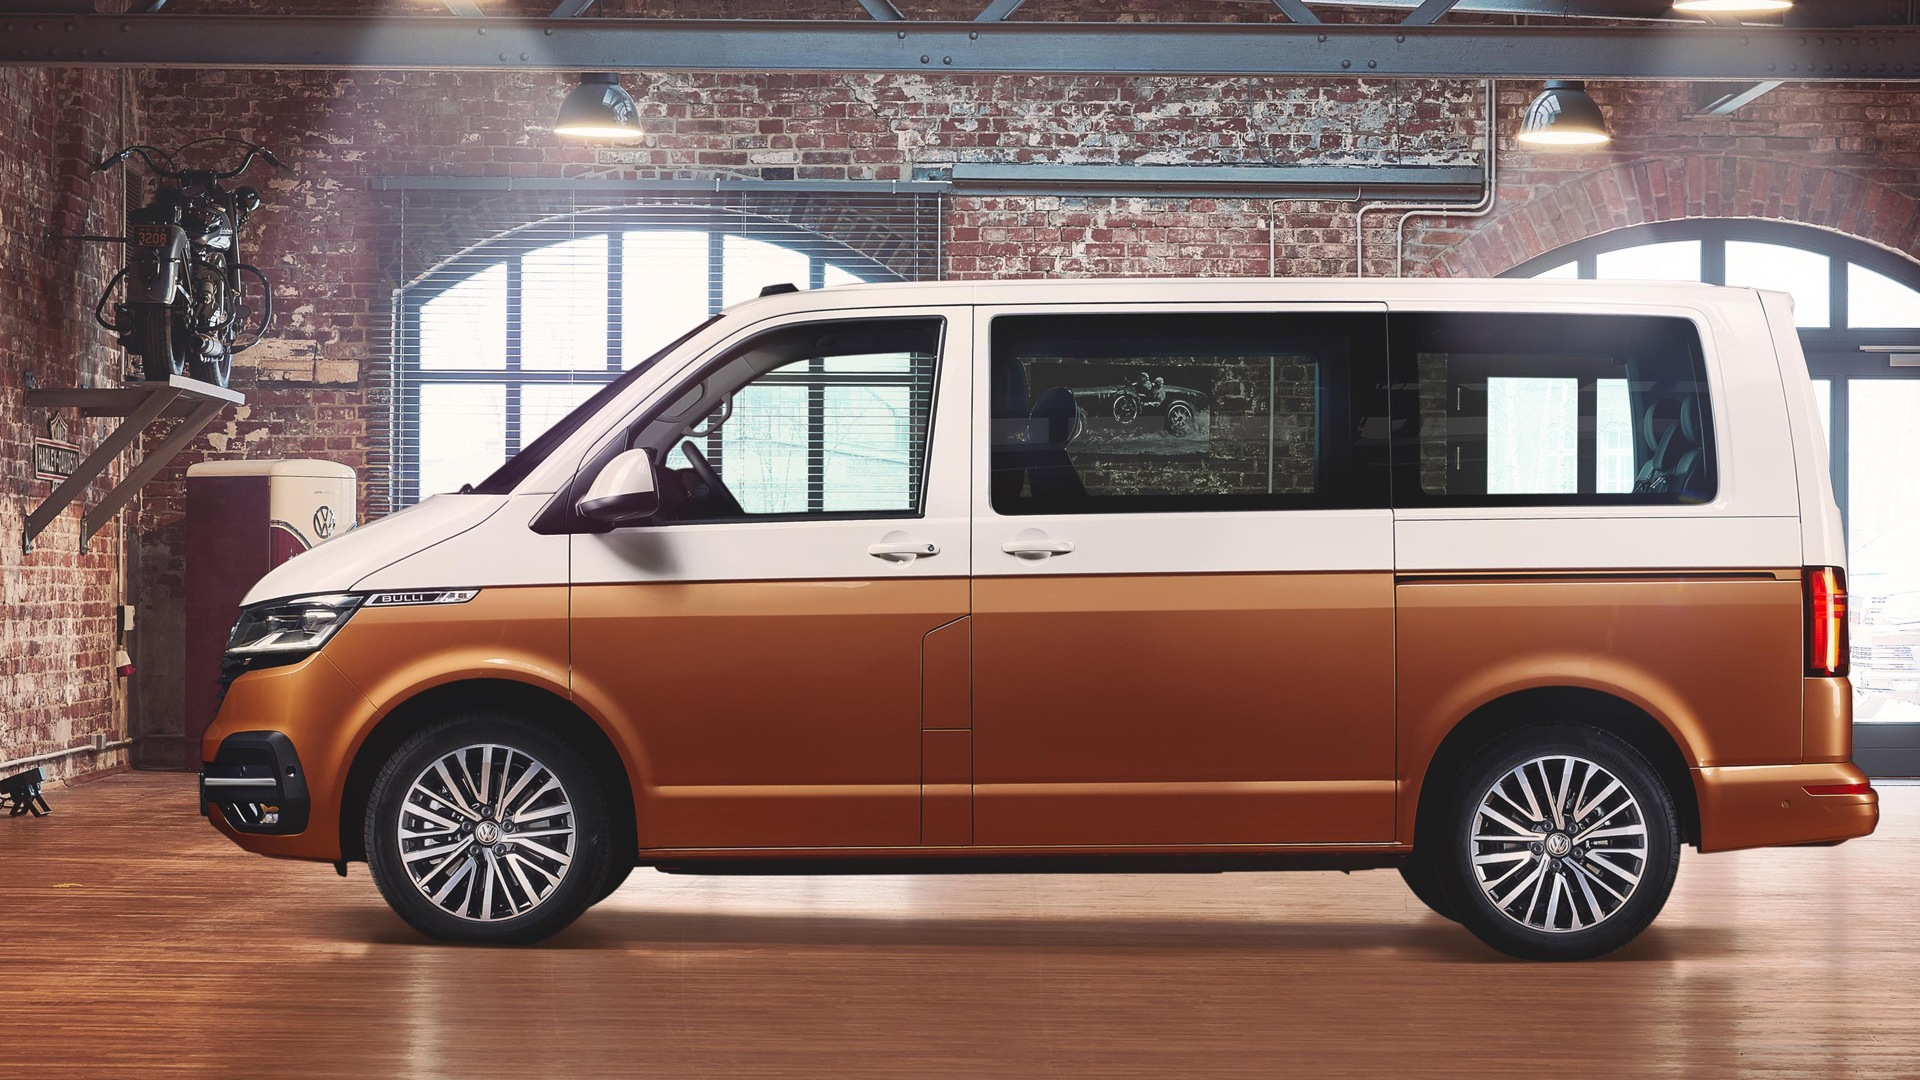 59 The Best 2020 VW Transporter Price Design and Review